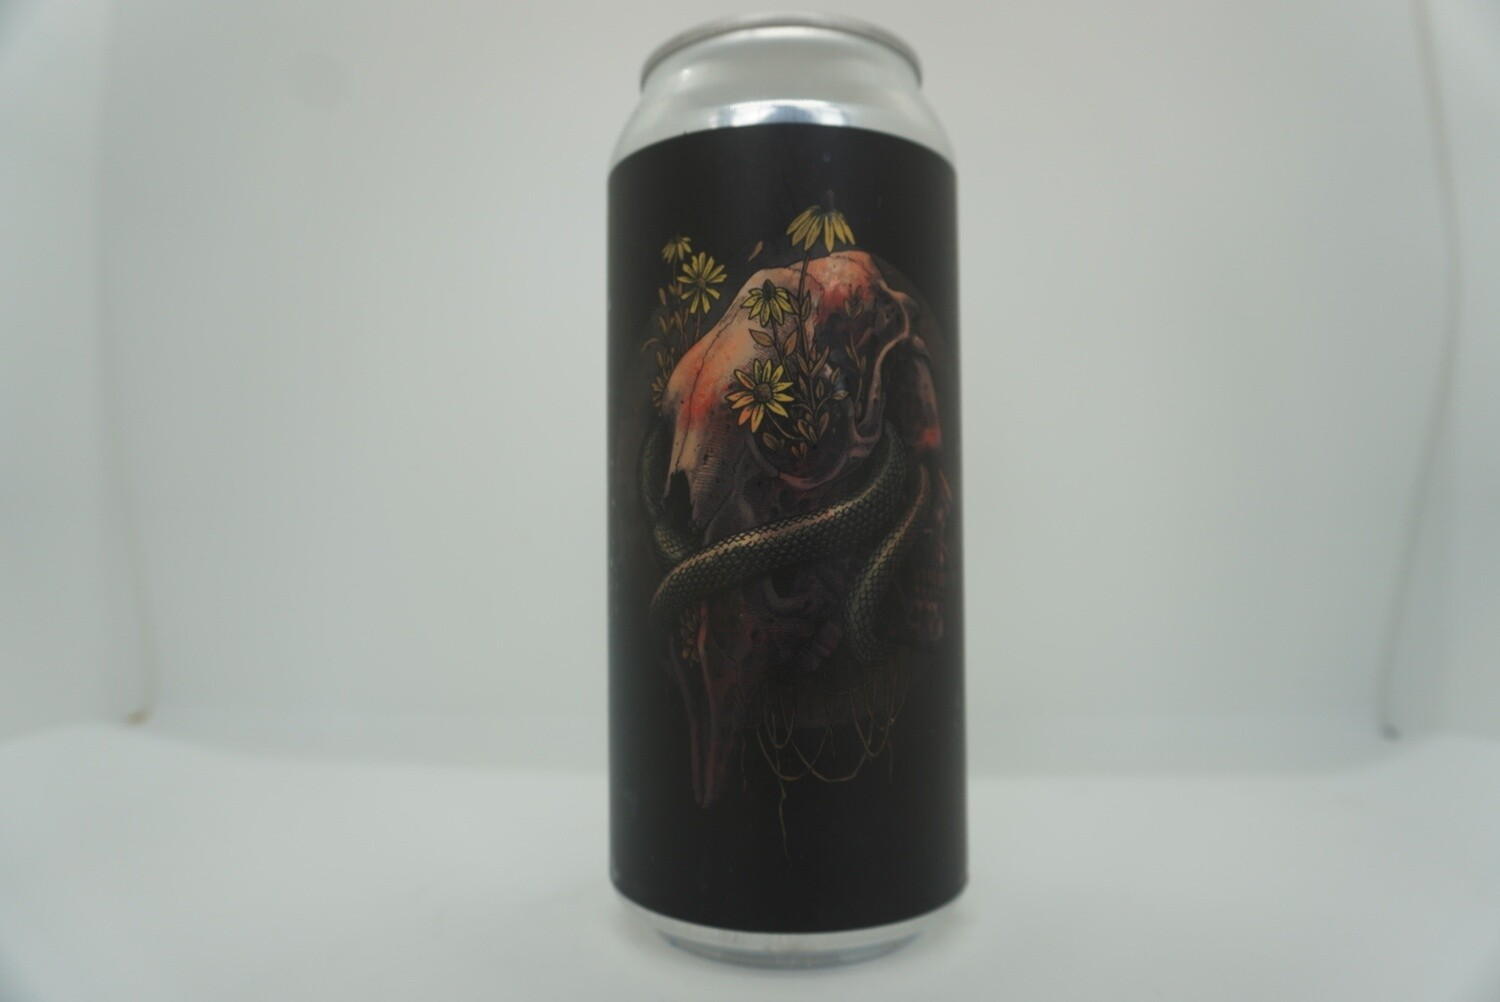 Unseen Creatures - To The Earth We Return - IPA - 7.3% ABV - 16oz Can